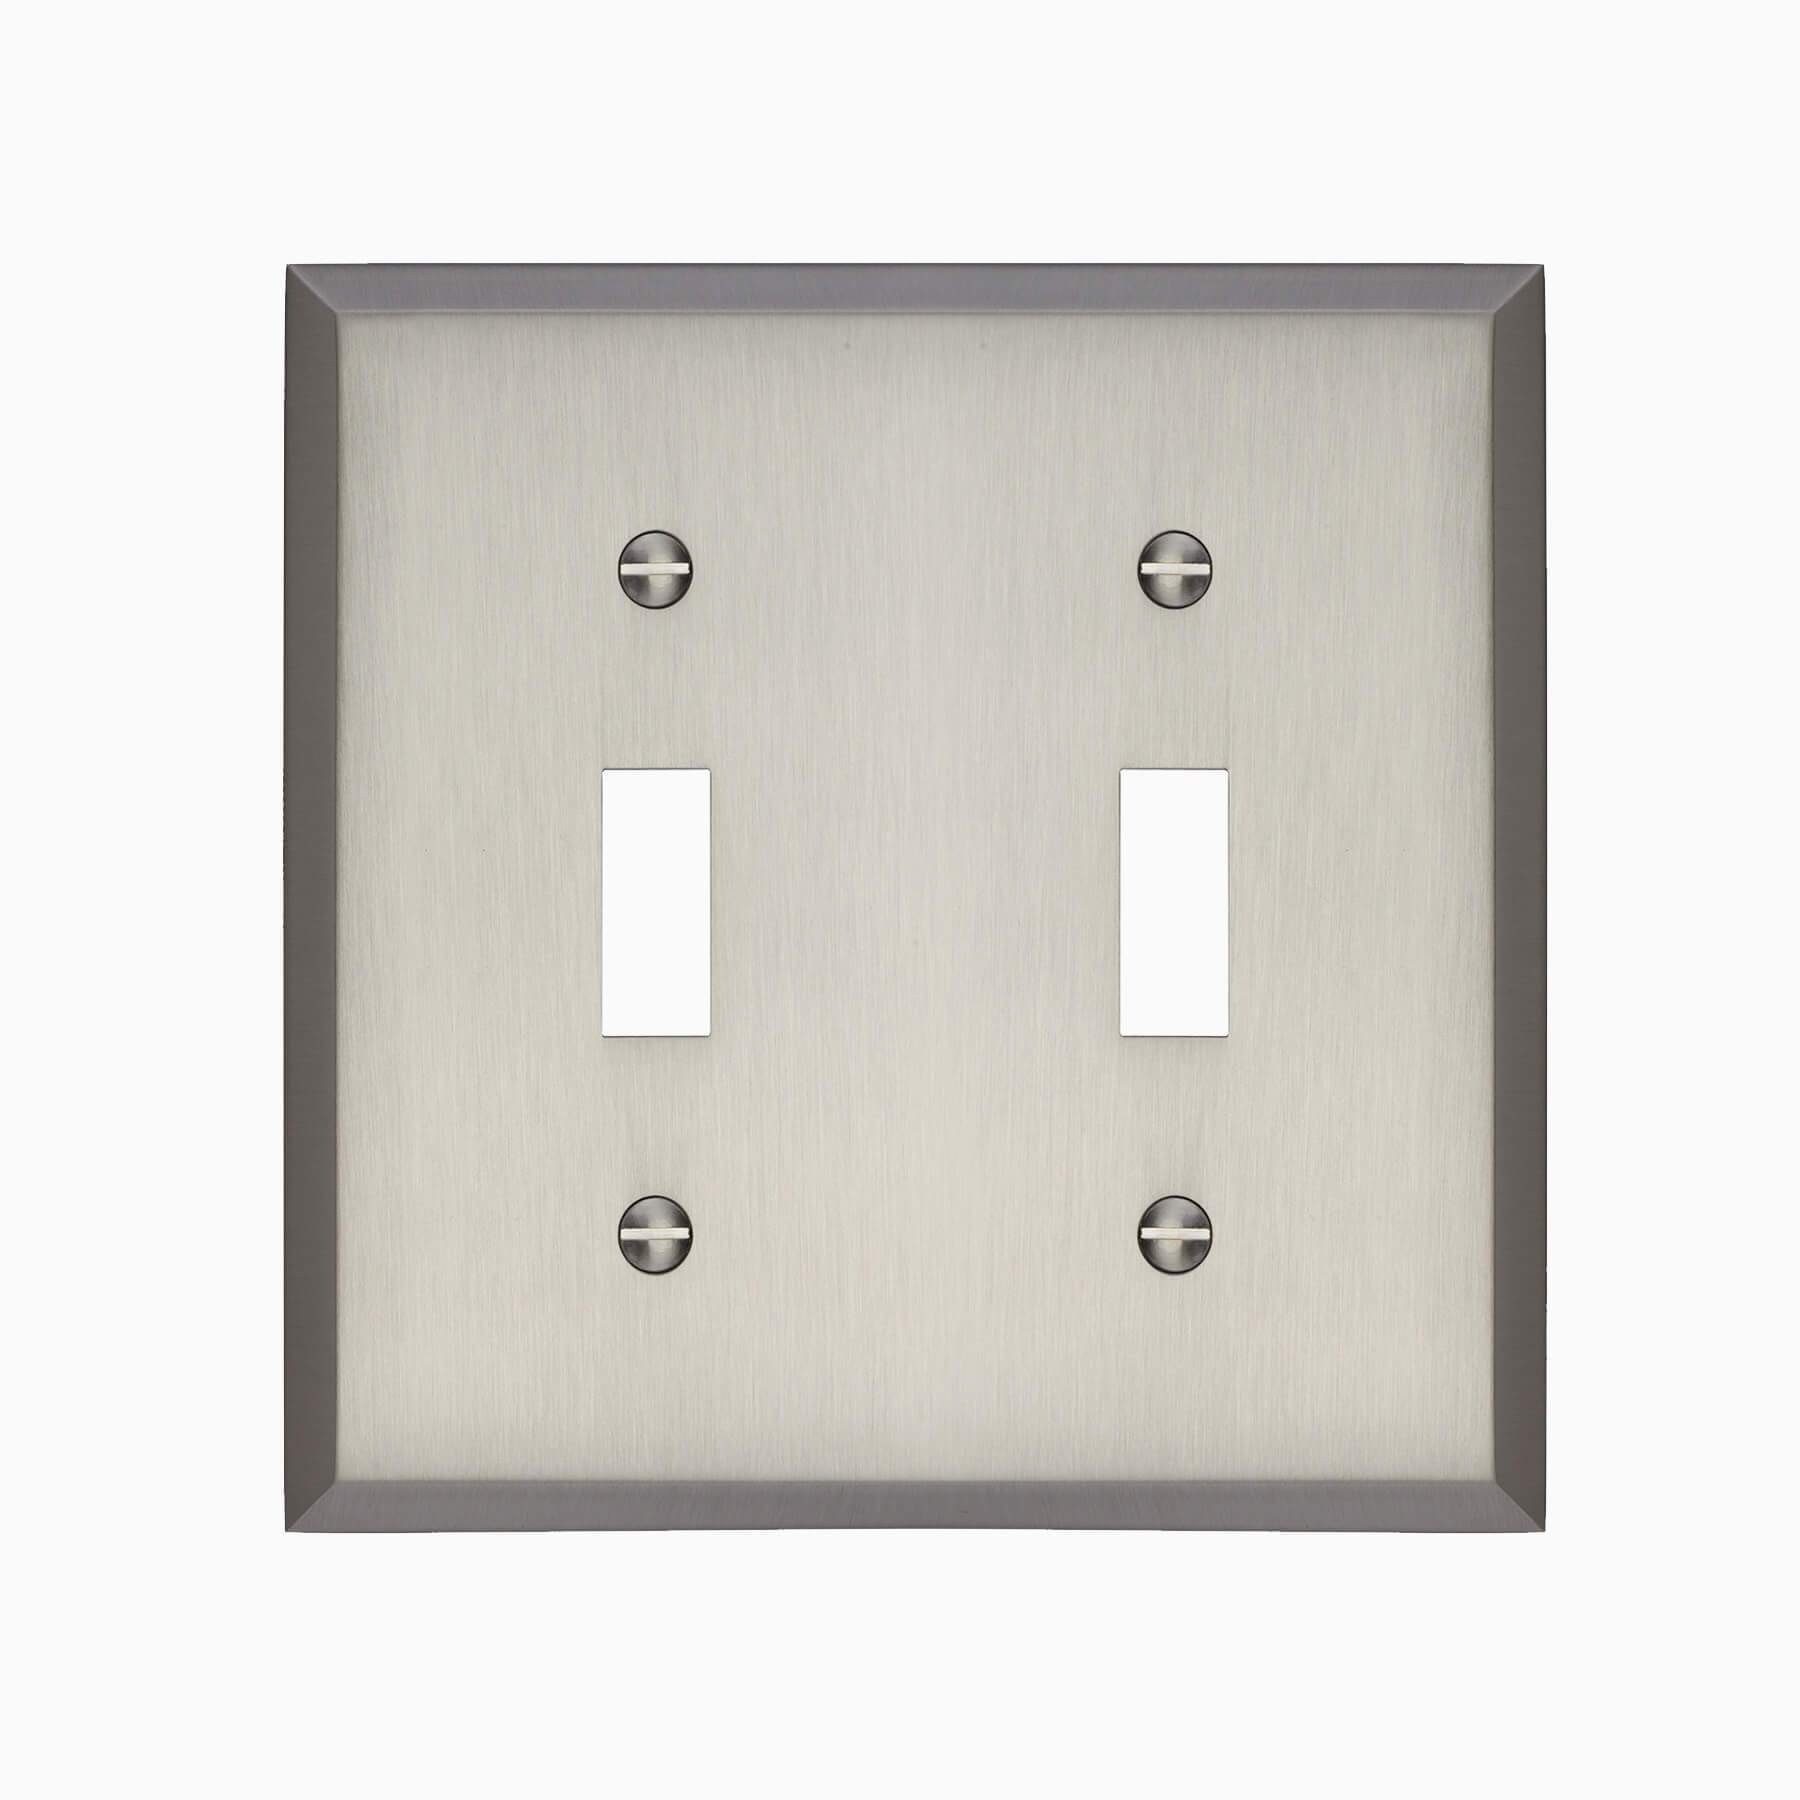 Graham Double Light Switch Cover Brushed Nickel Wall Mounted Electrical Switch Plate